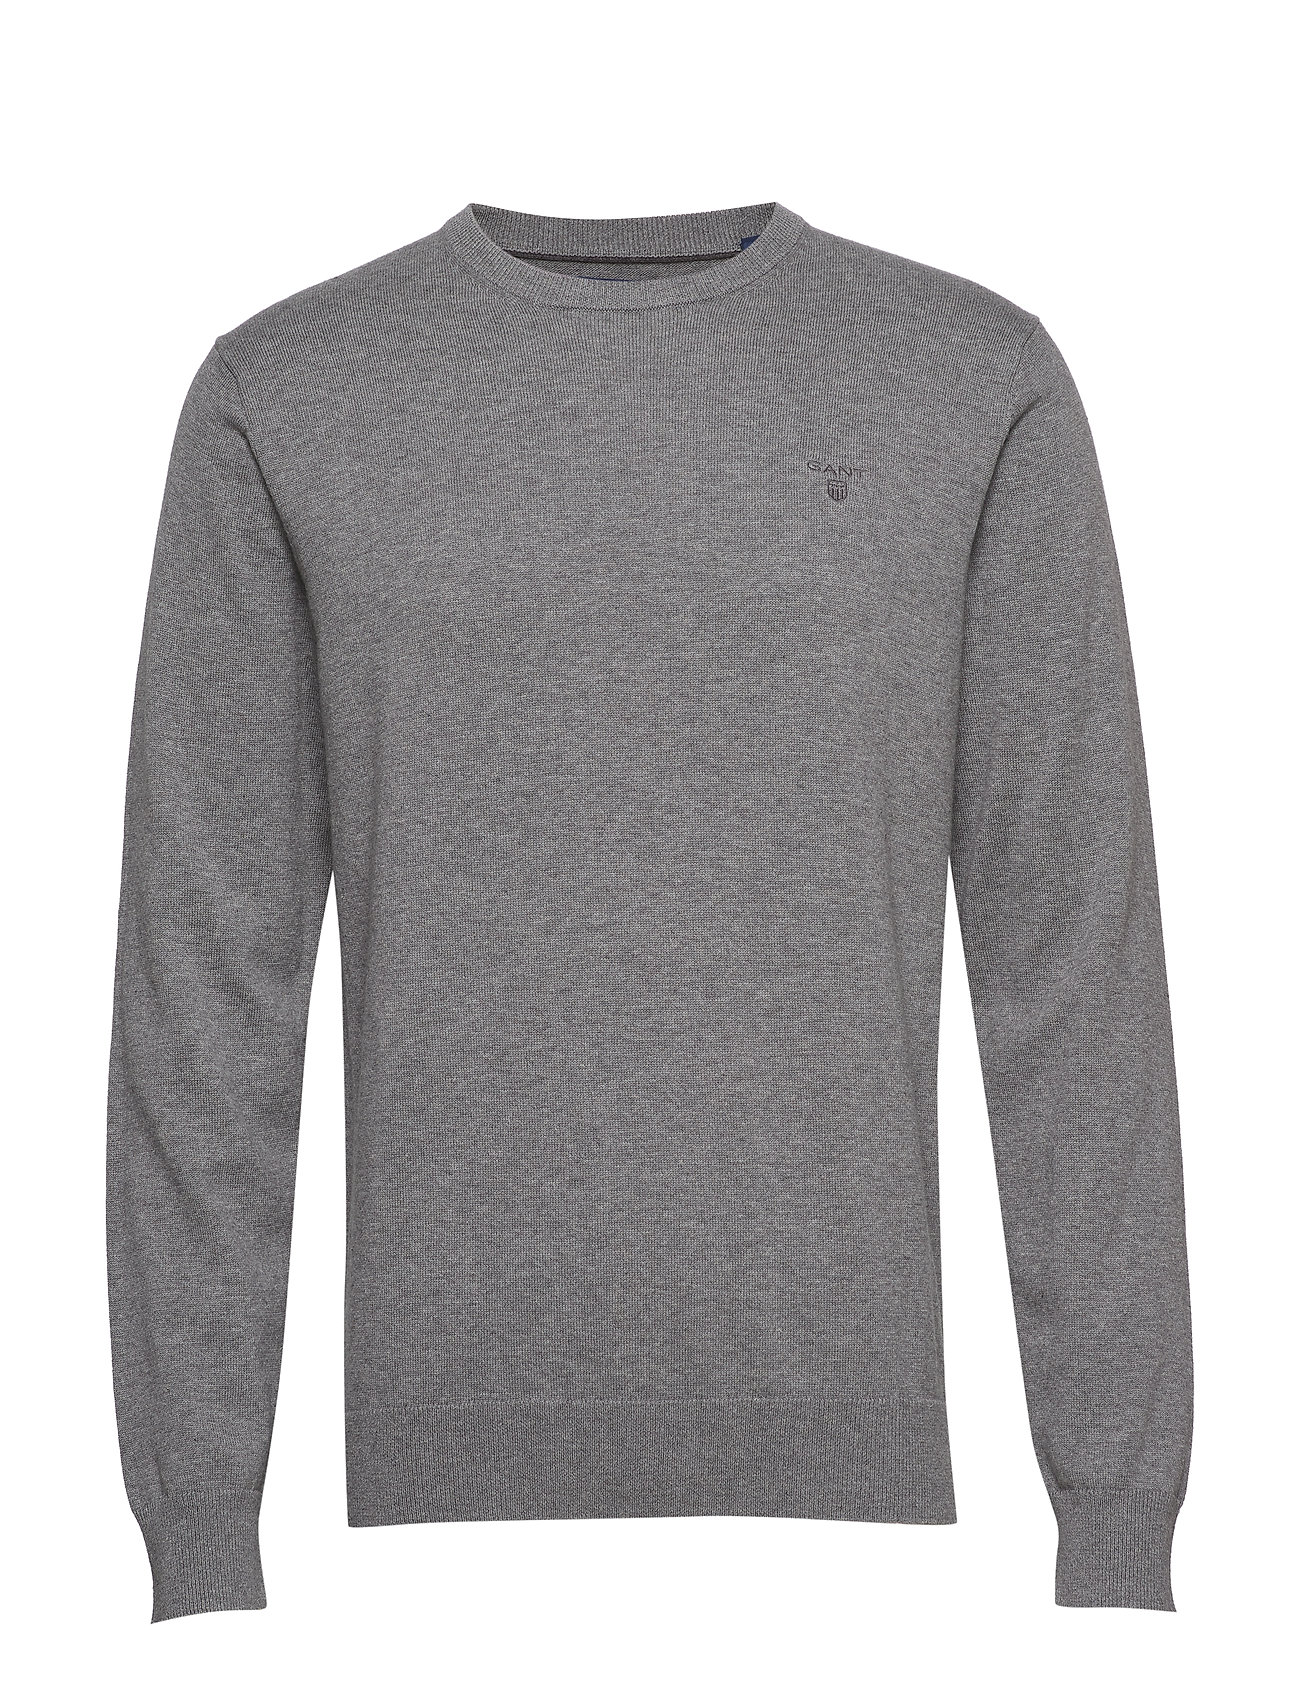 GANT LT. WEIGHT COTTON CREW